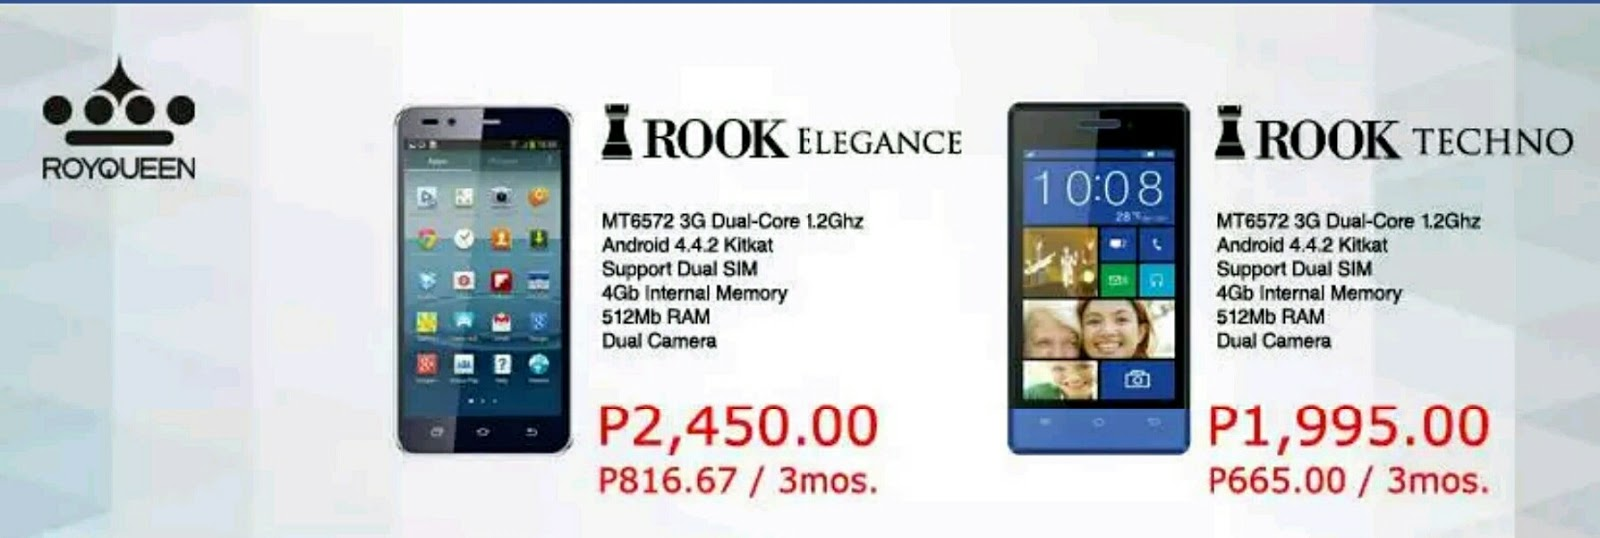 Royqueen Rook Elegance and Techno budget smartphones announced